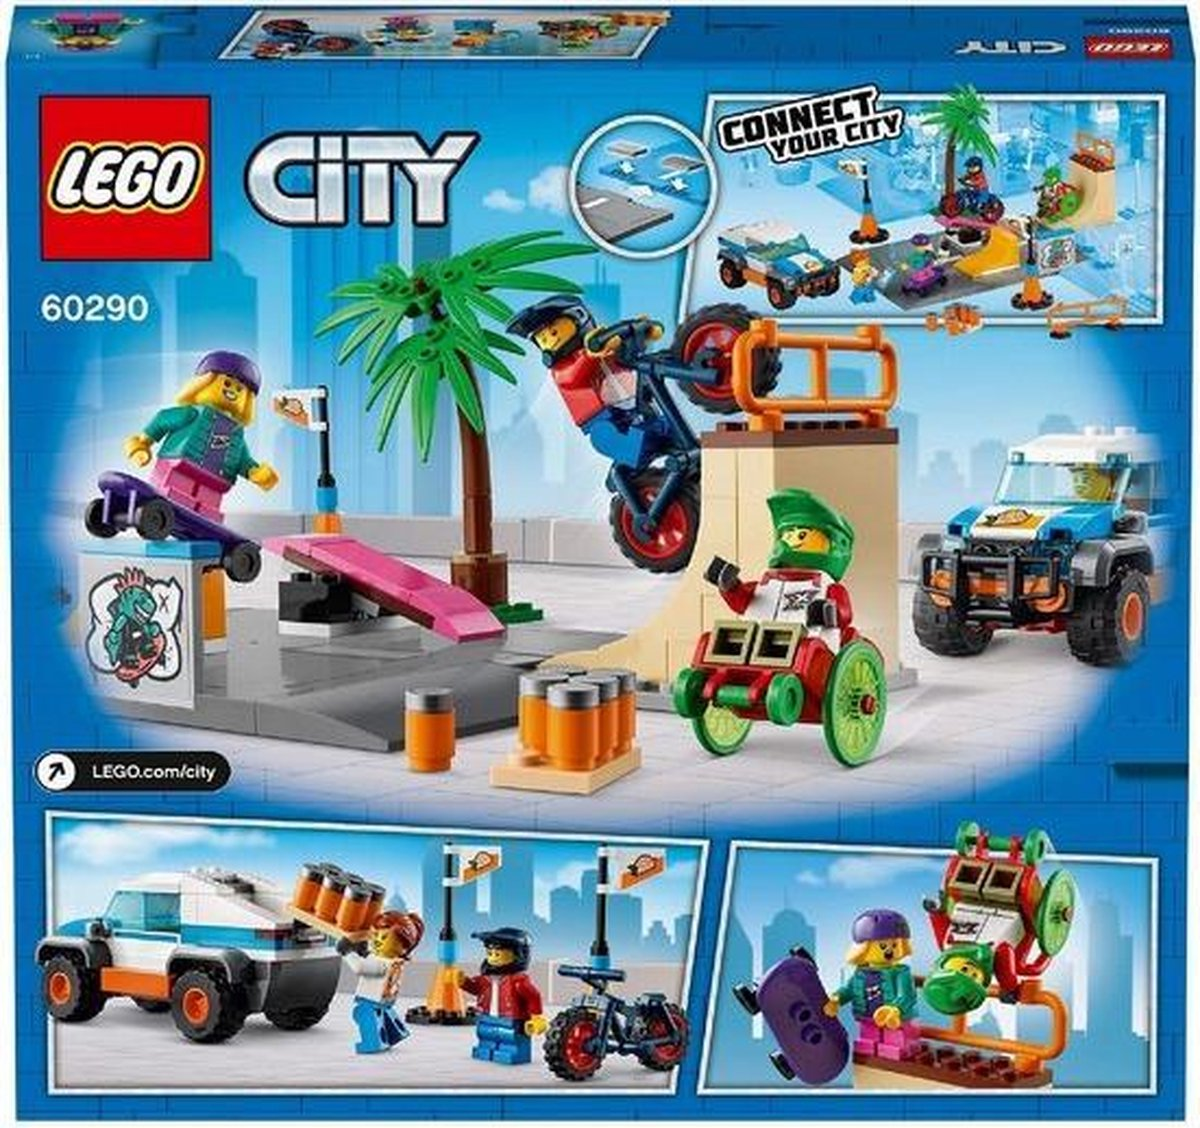 Playset City Skate rink Lego 60290